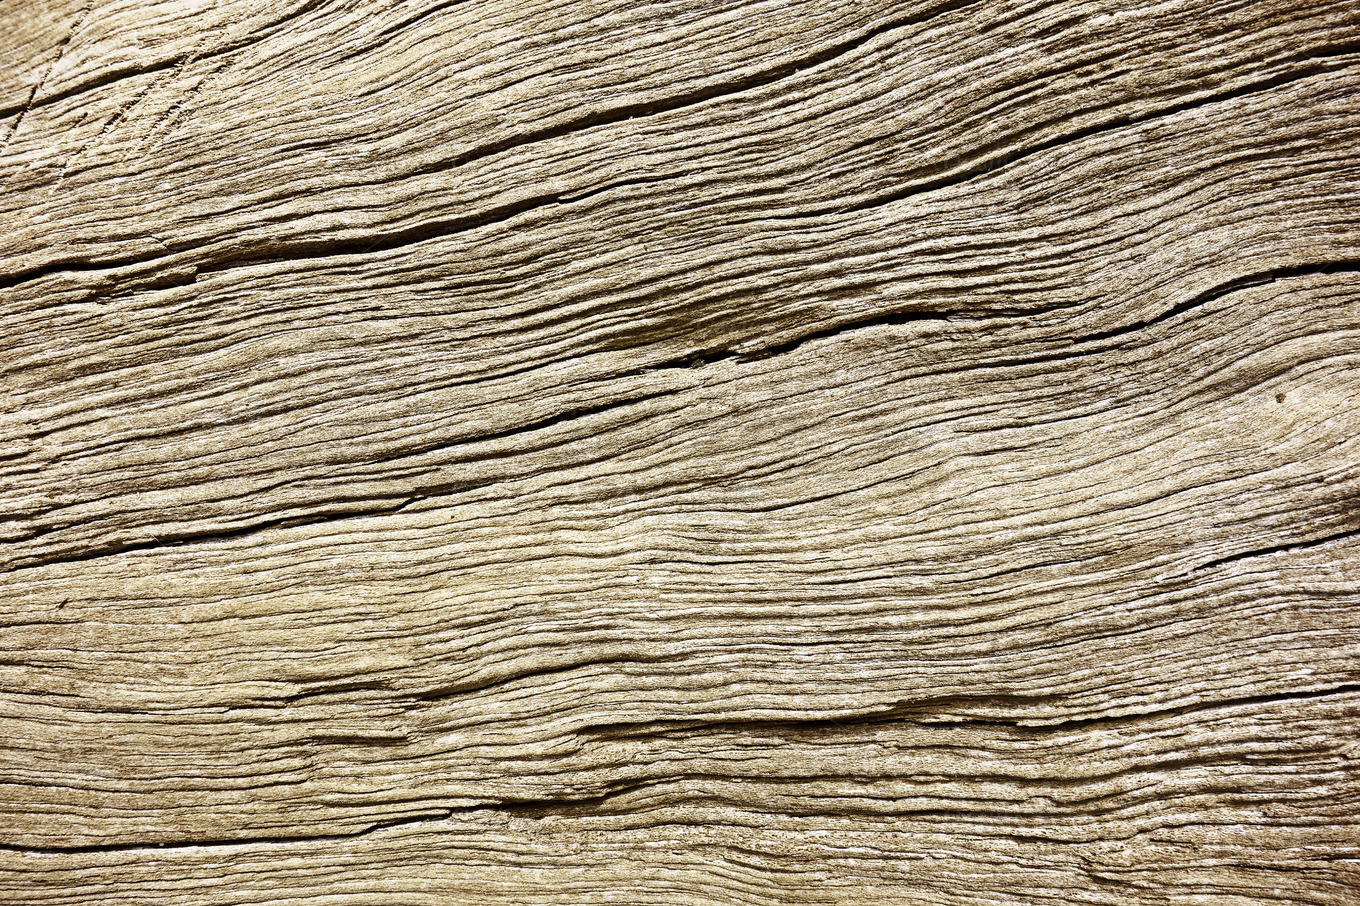 Natural Wood Texture Abstract Photos On Creative Market